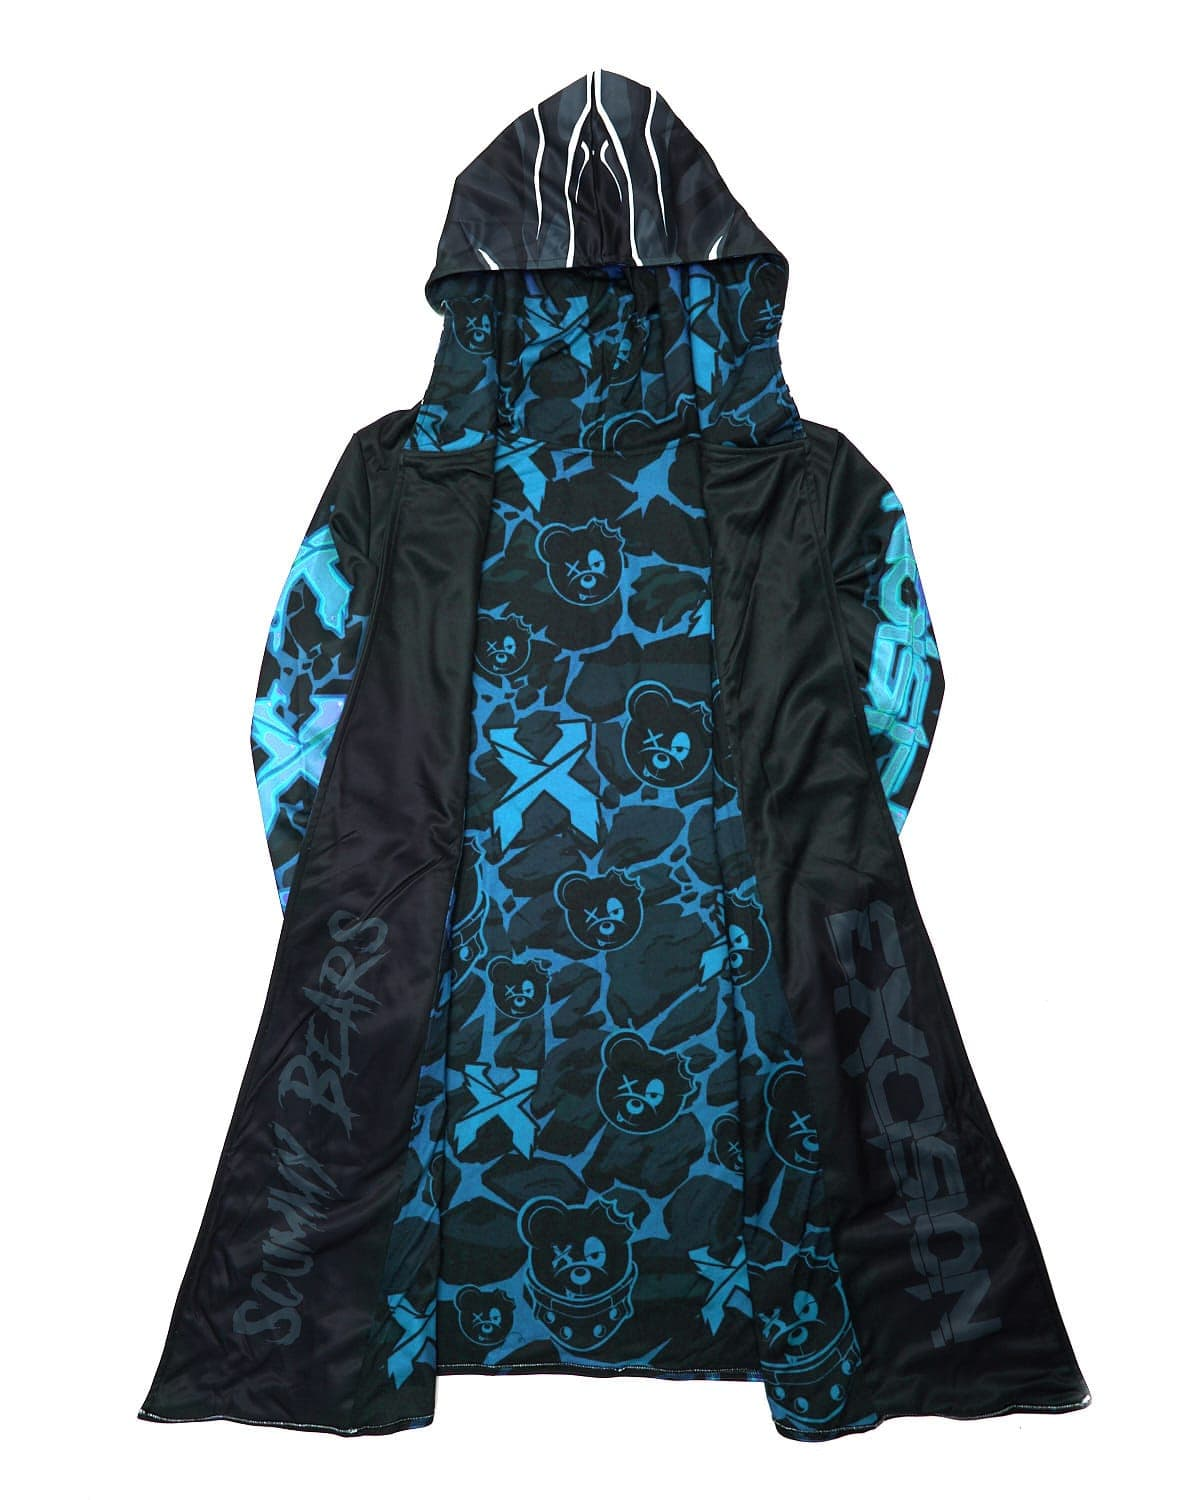 Excision x Scummy Bears Dye Sub Cloak - Blue